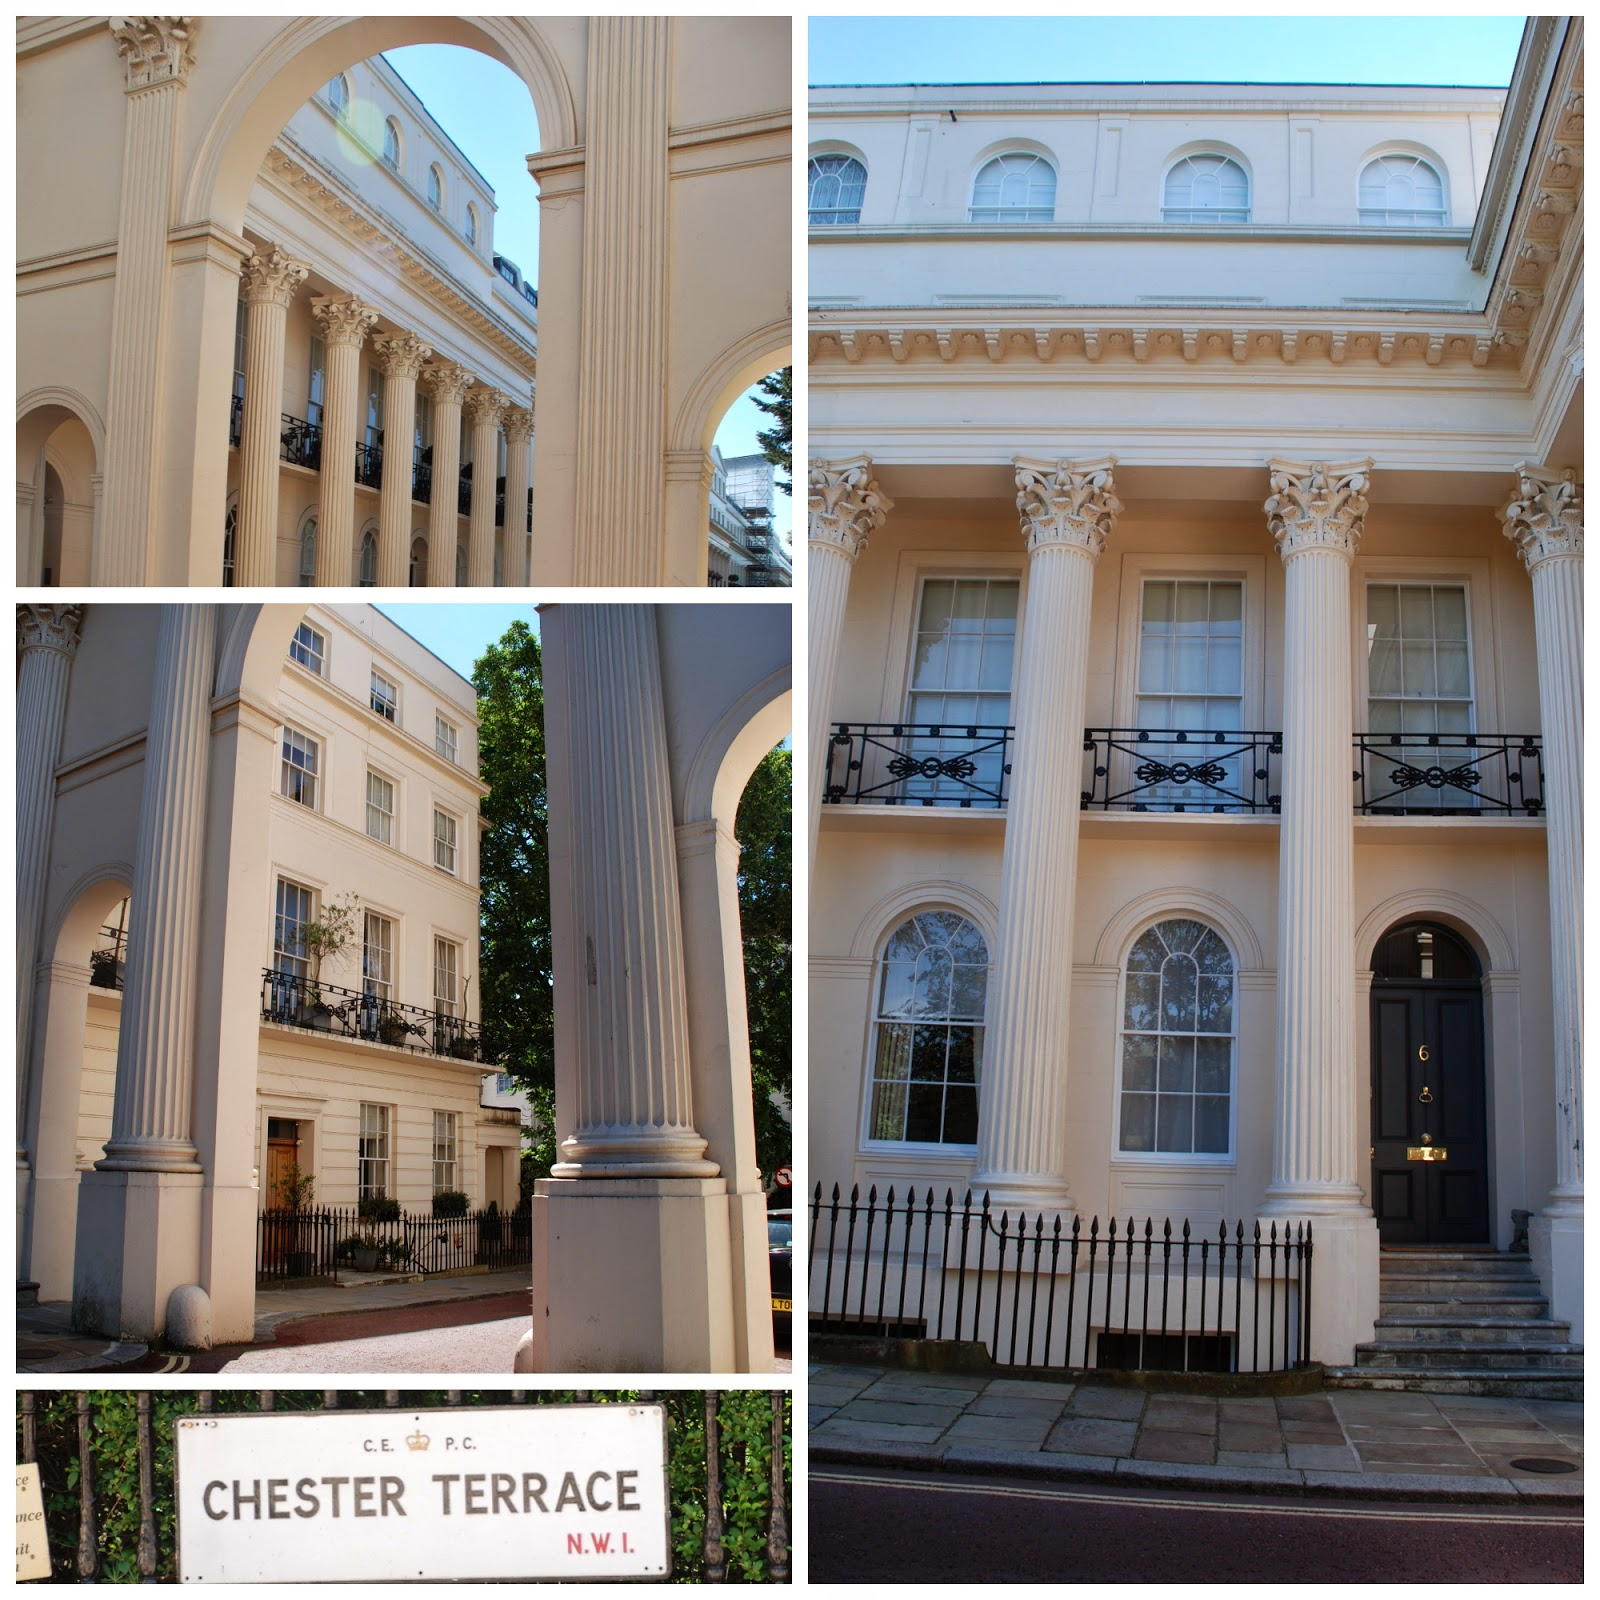 Chester Terrace, London